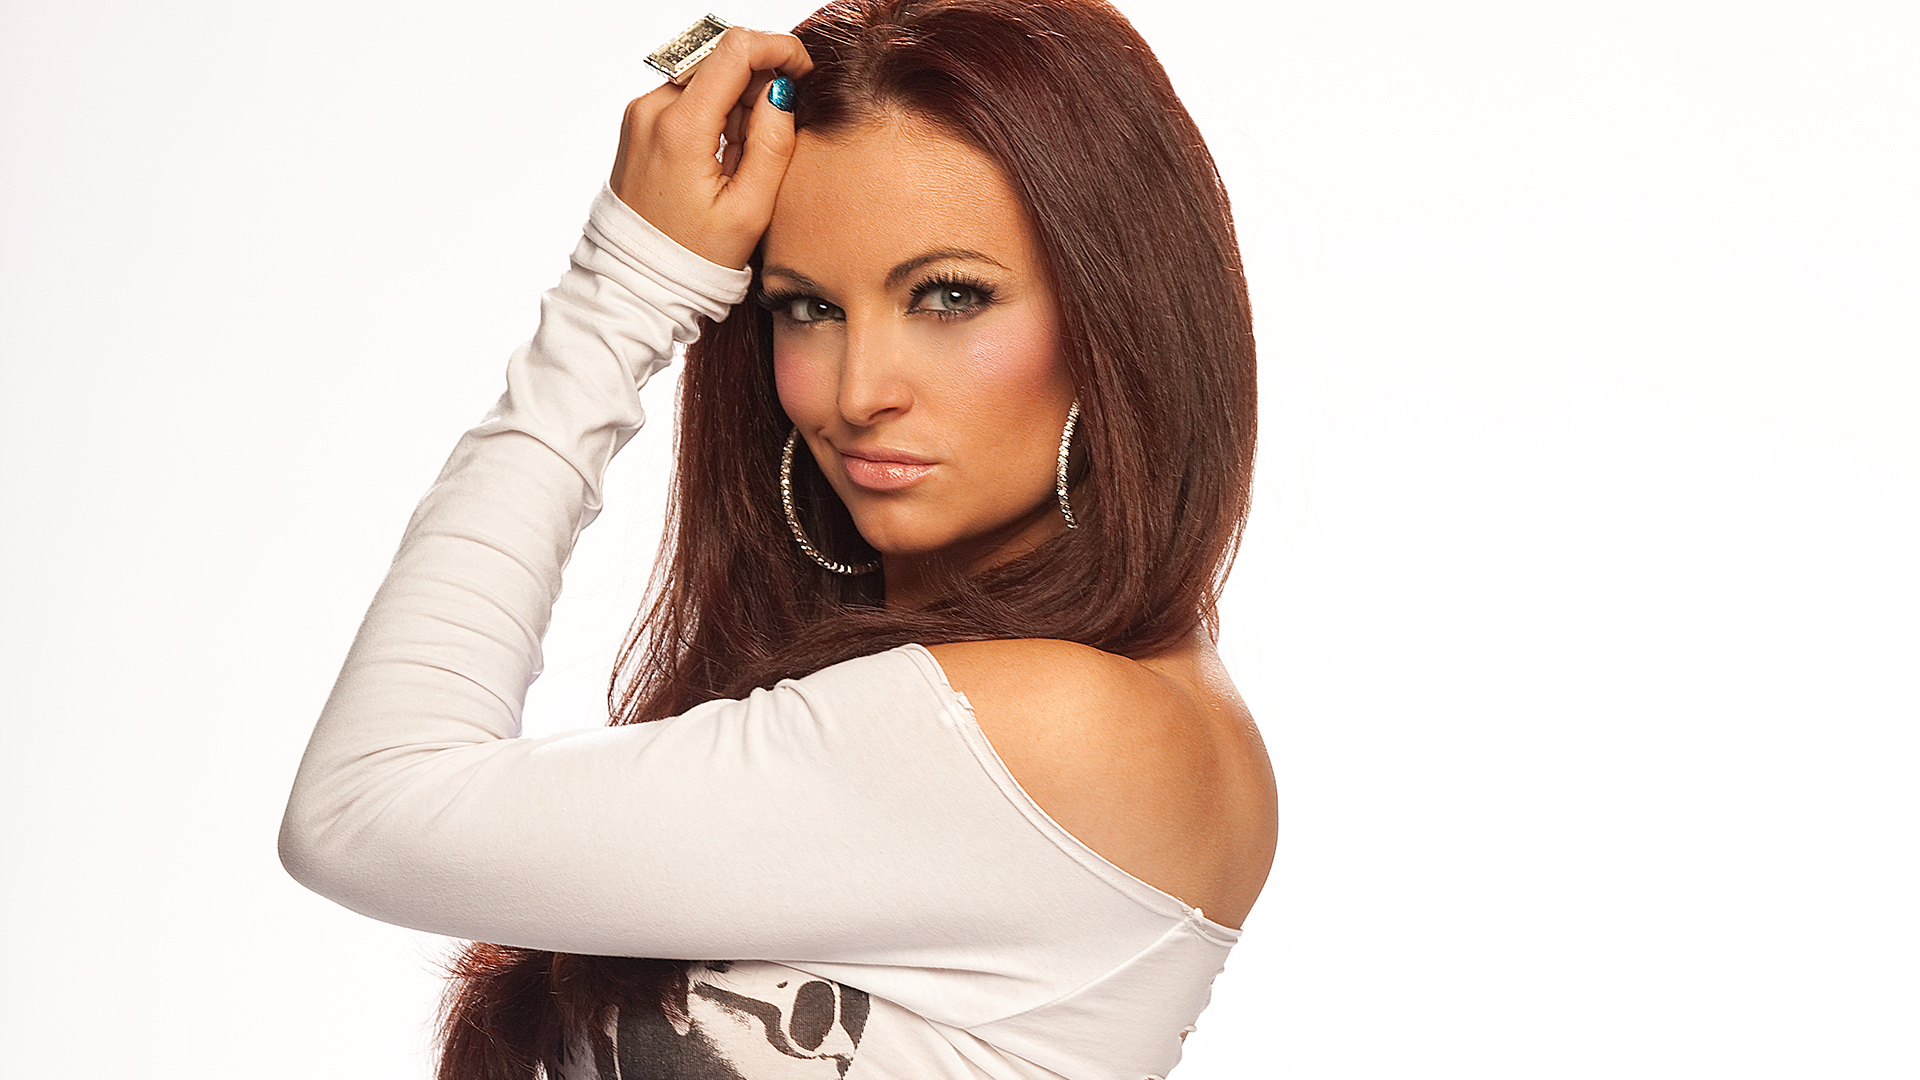 1920x1080 - Maria Kanellis Wallpapers 26